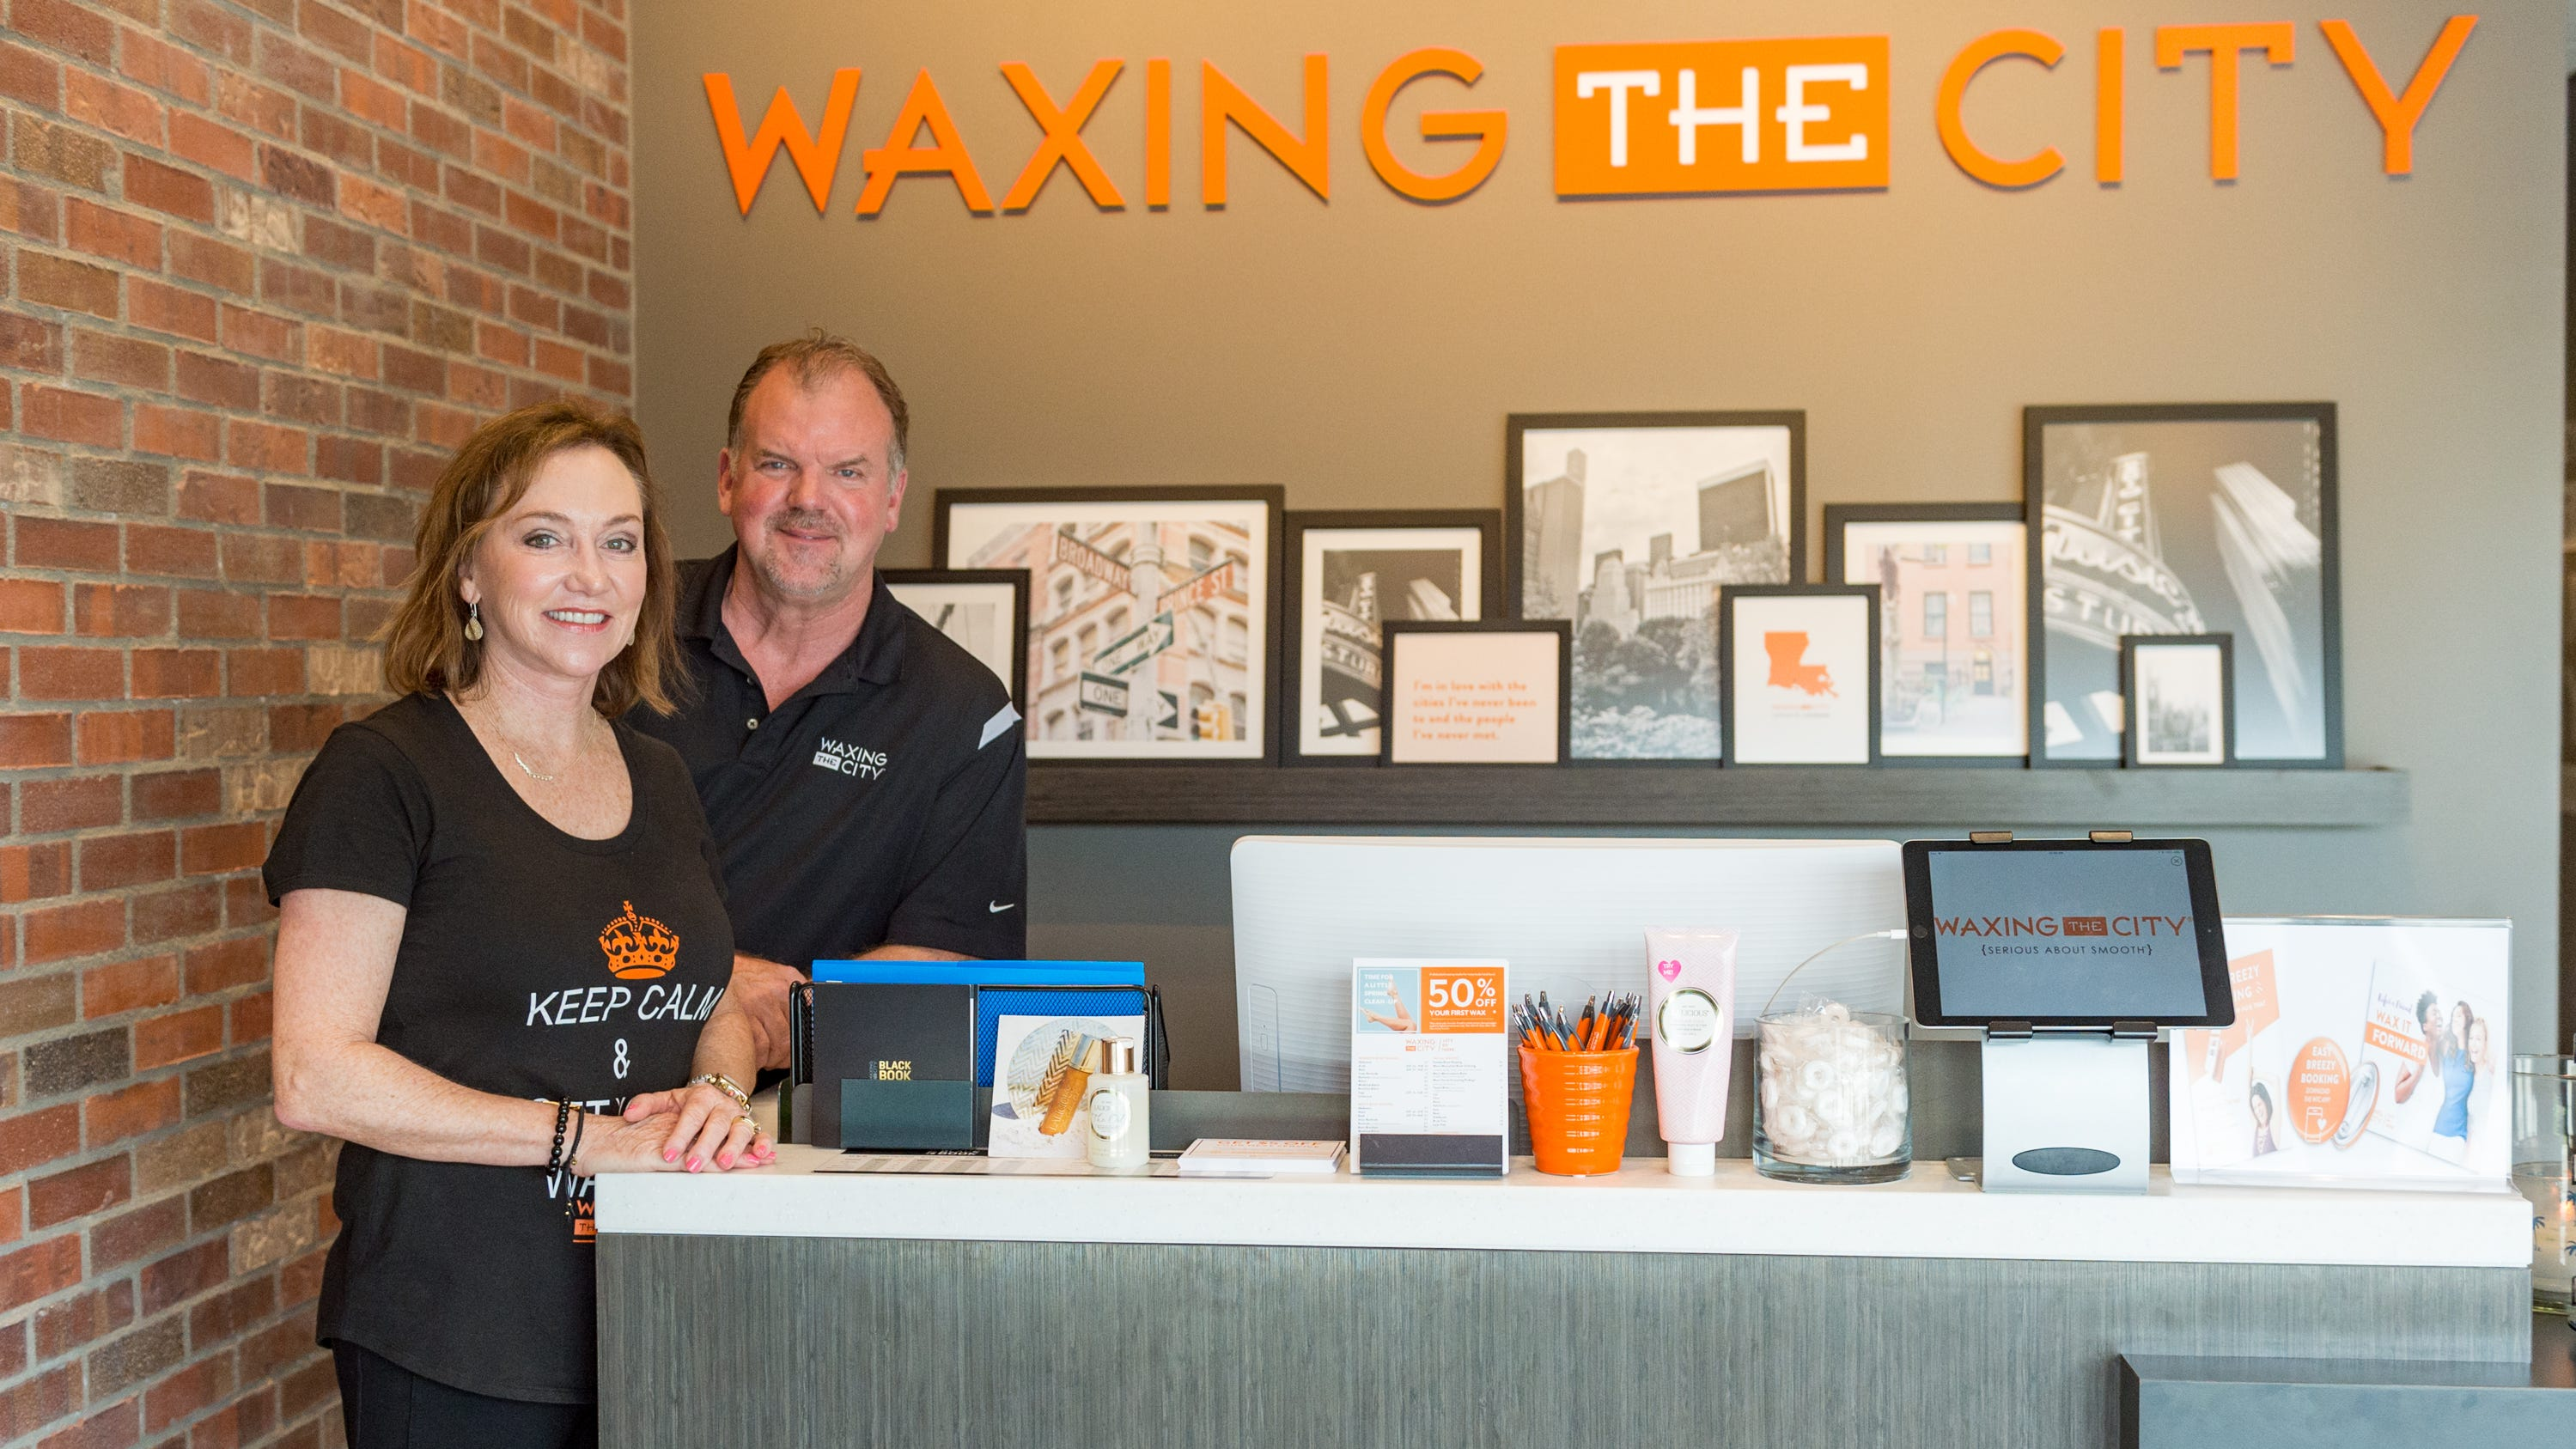 Couple who owned 30+ businesses takes new leap of faith